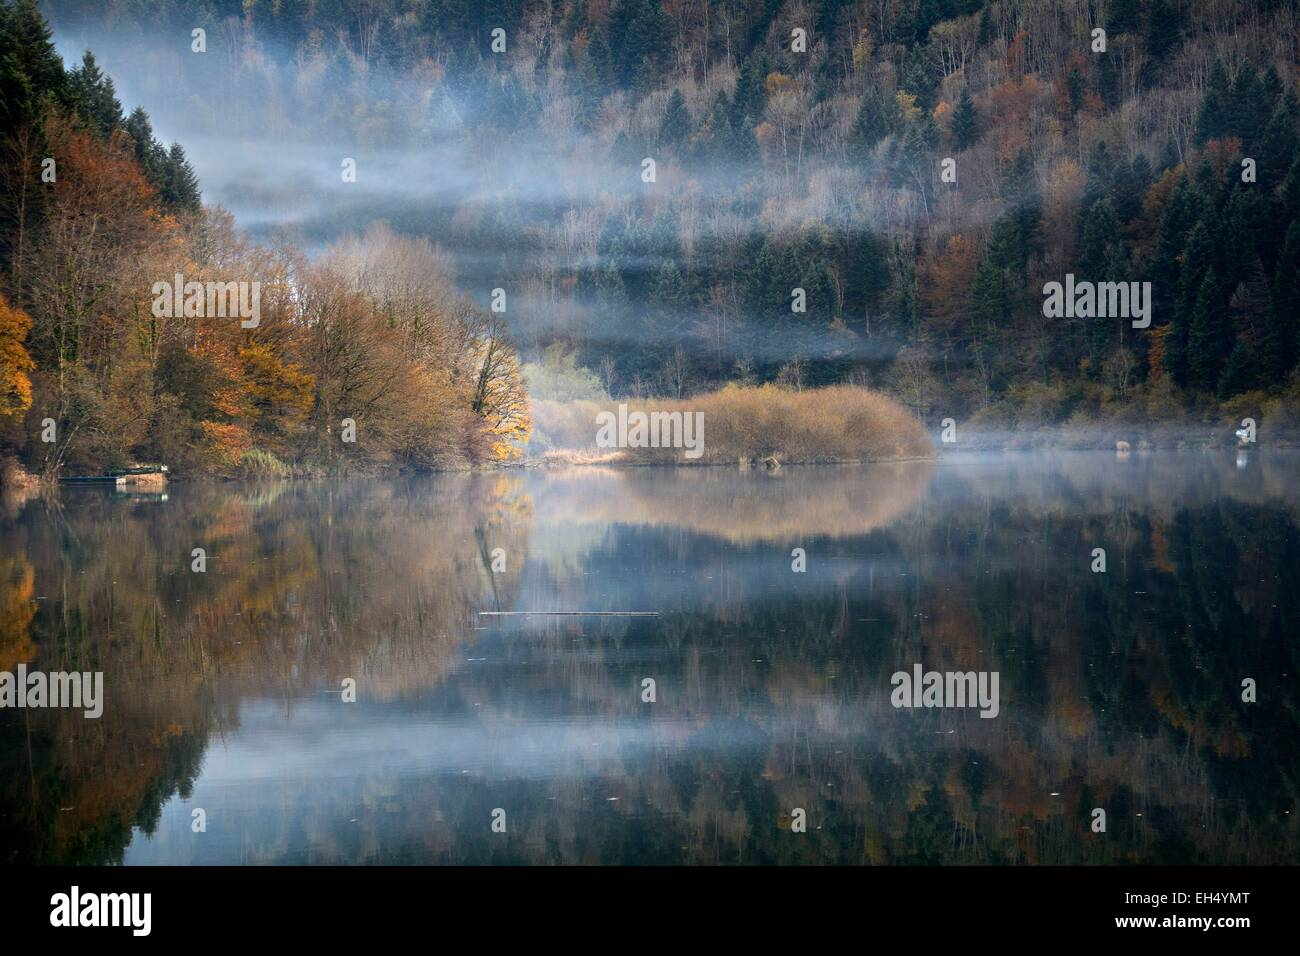 France, Doubs, Glere, Mist on the Doubs valley of Switzerland in the autumn border - Stock Image